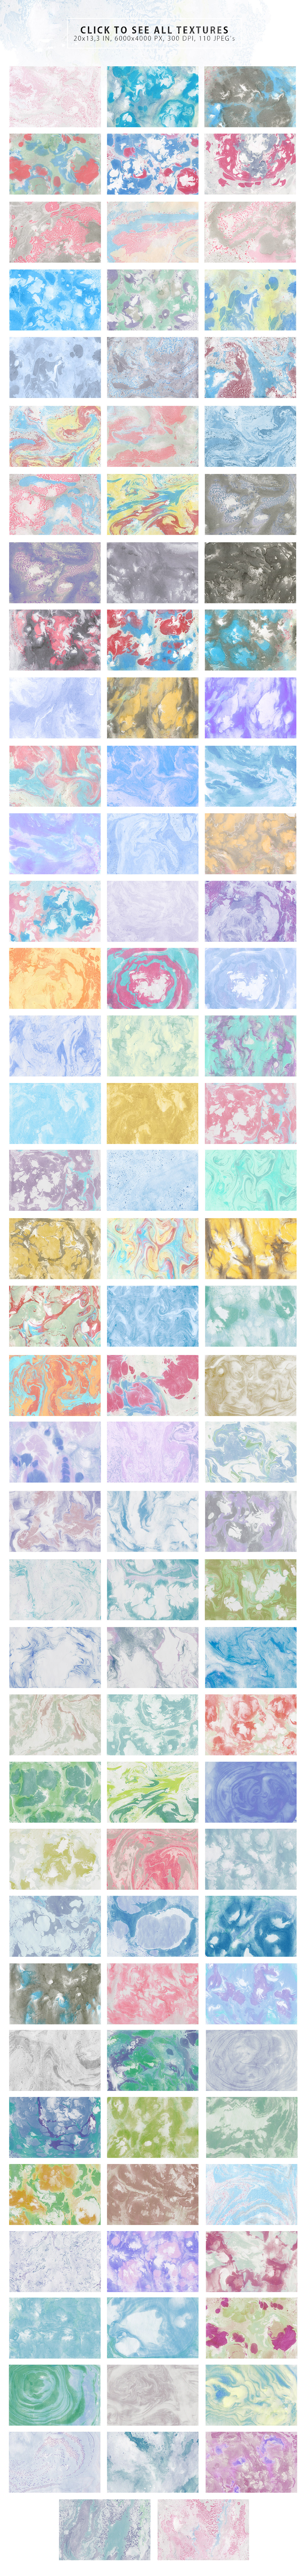 Only Ink & Marble Backgrounds Bundle example image 6